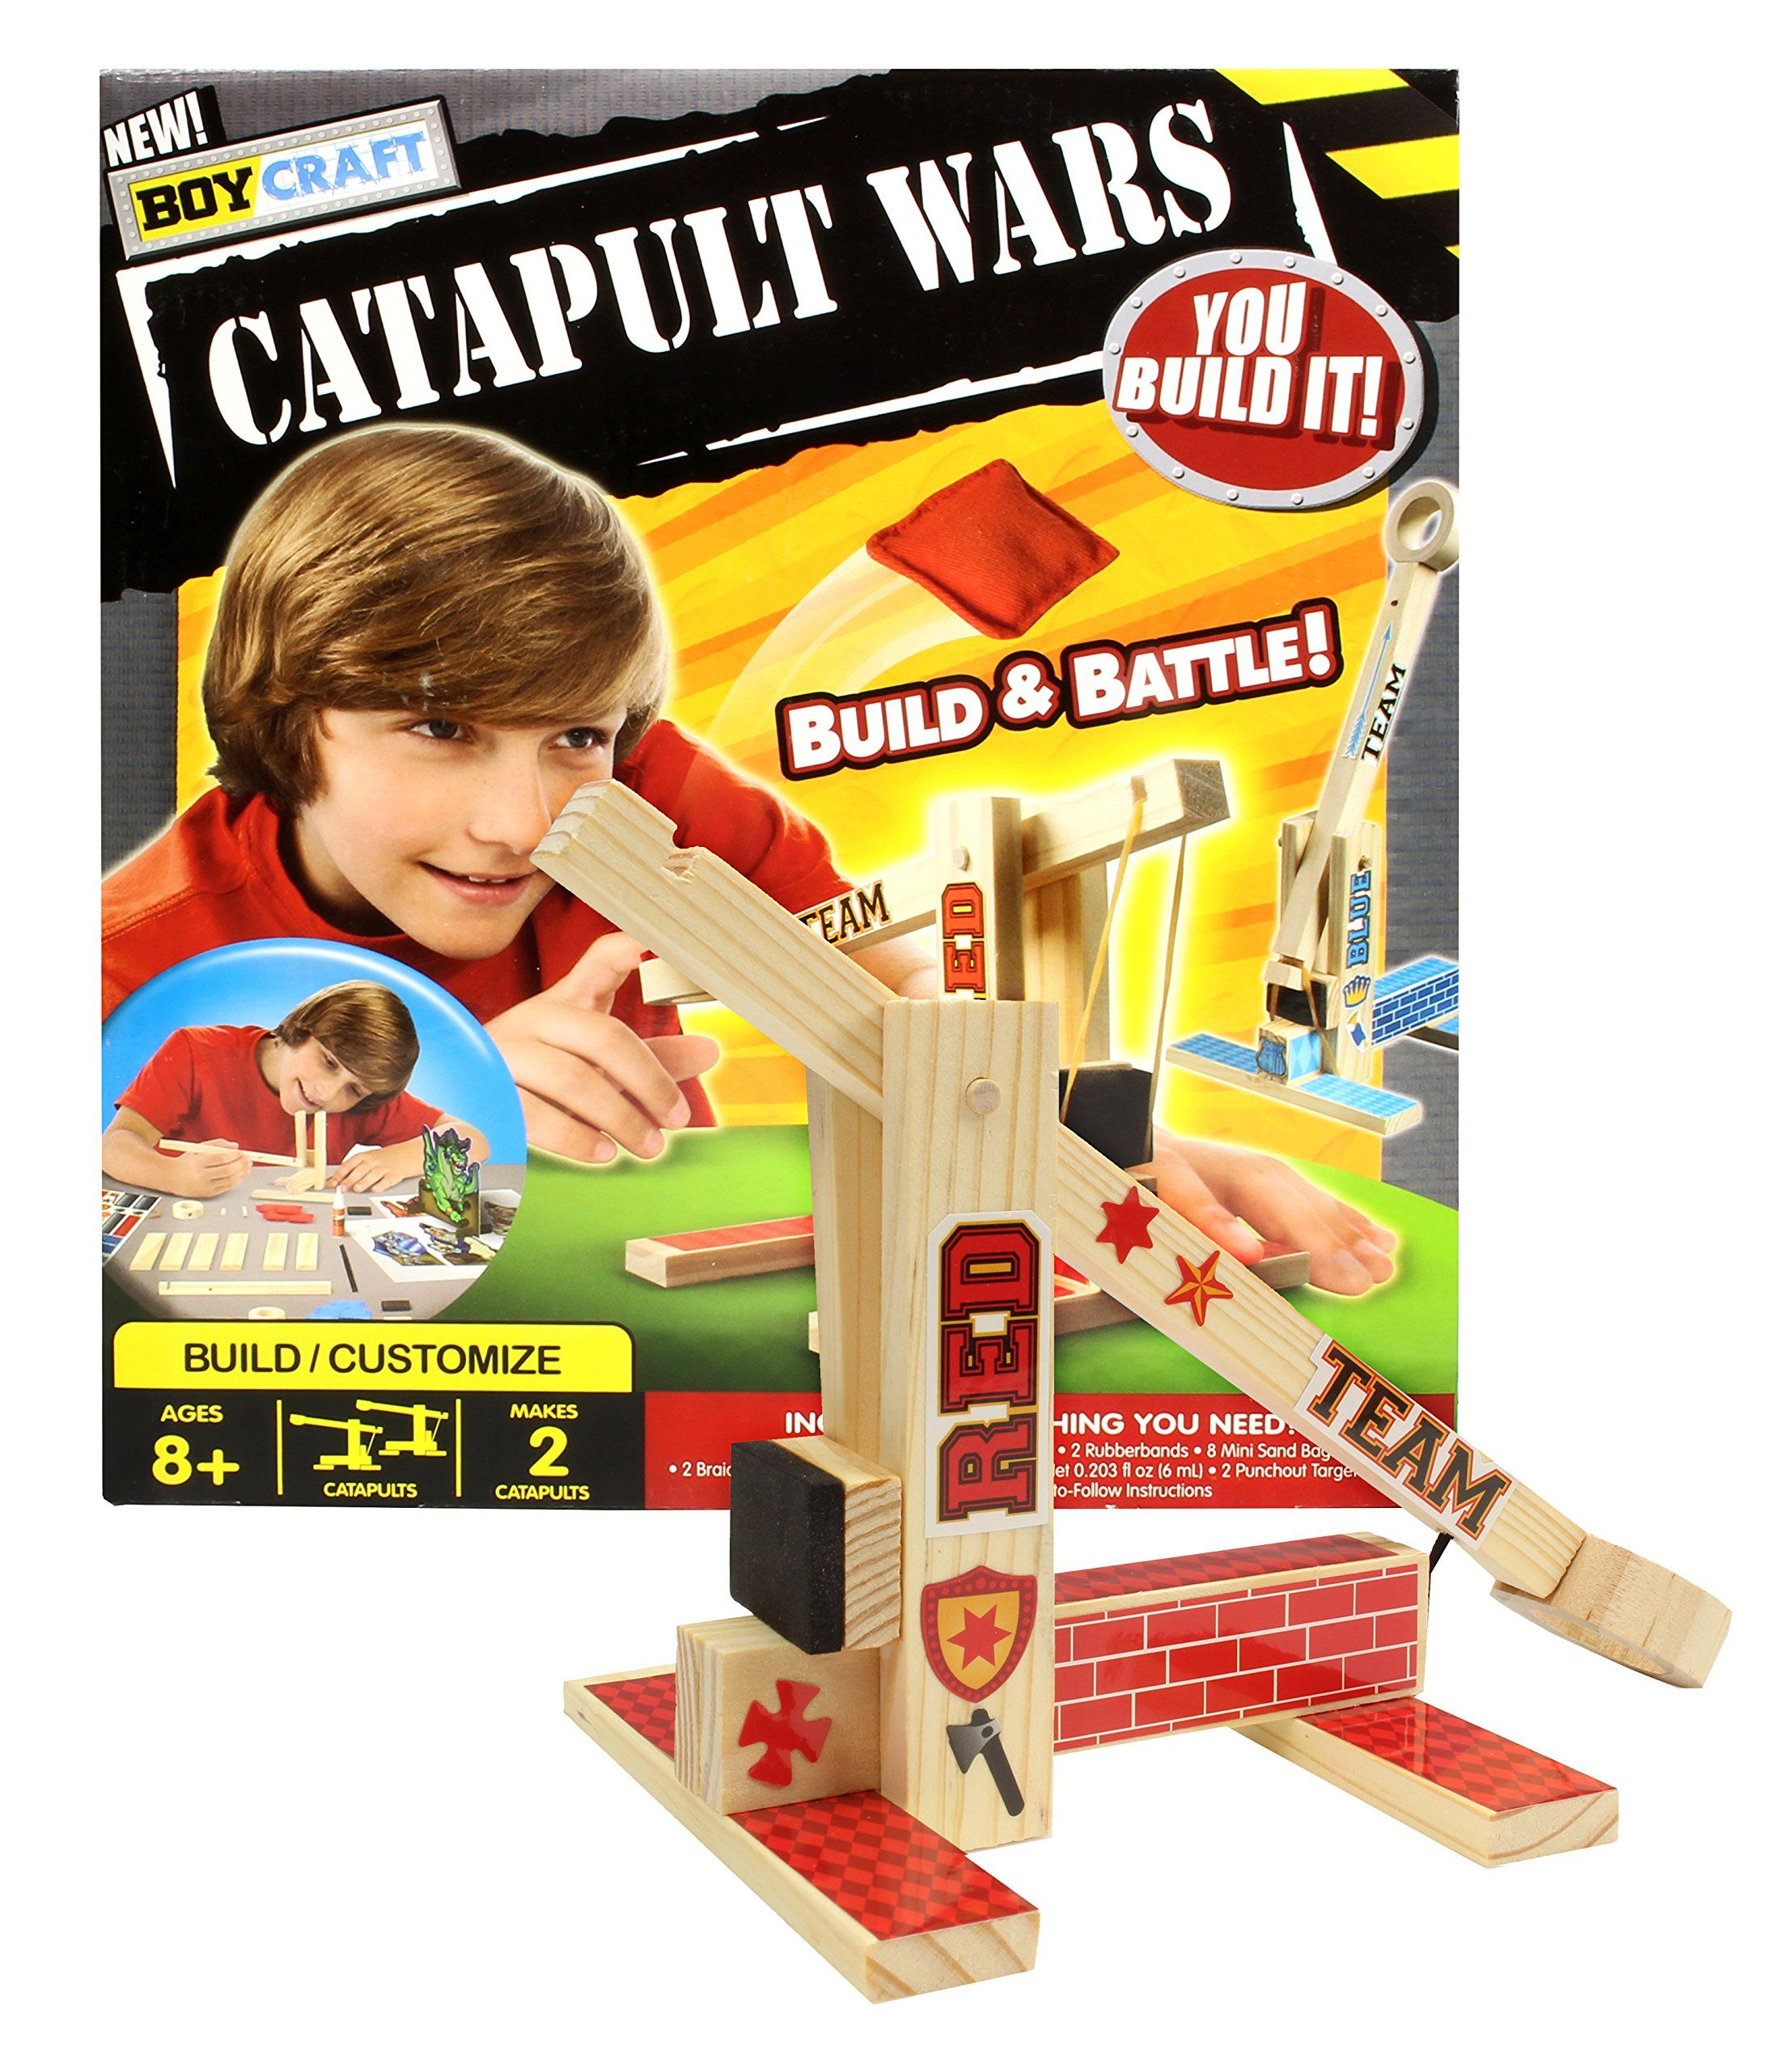 Kids Toys Happy Christmas Christmasgift Amazoncom Snap Circuits Sc300 Electronics Discovery Kit Boy Craft Catapult Wars Build And Battle With 2 Catapults Games